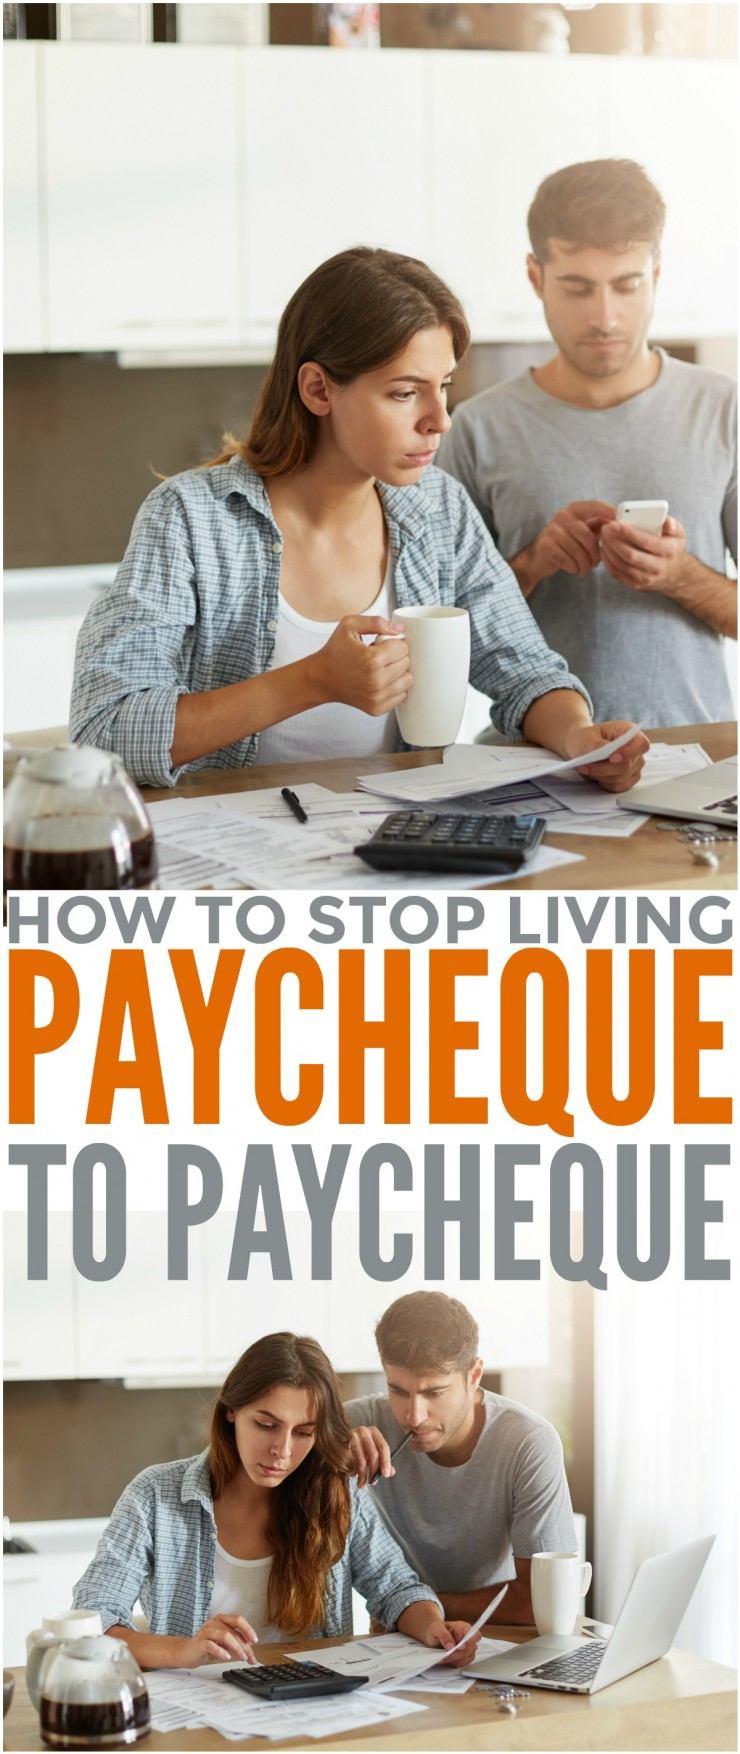 How to Stop Living Paycheque to paycheque: I want to help you reach the point in life where you are no longer living that paycheck to paycheck cycle and are instead blissfully saving and no longer stressing about money.